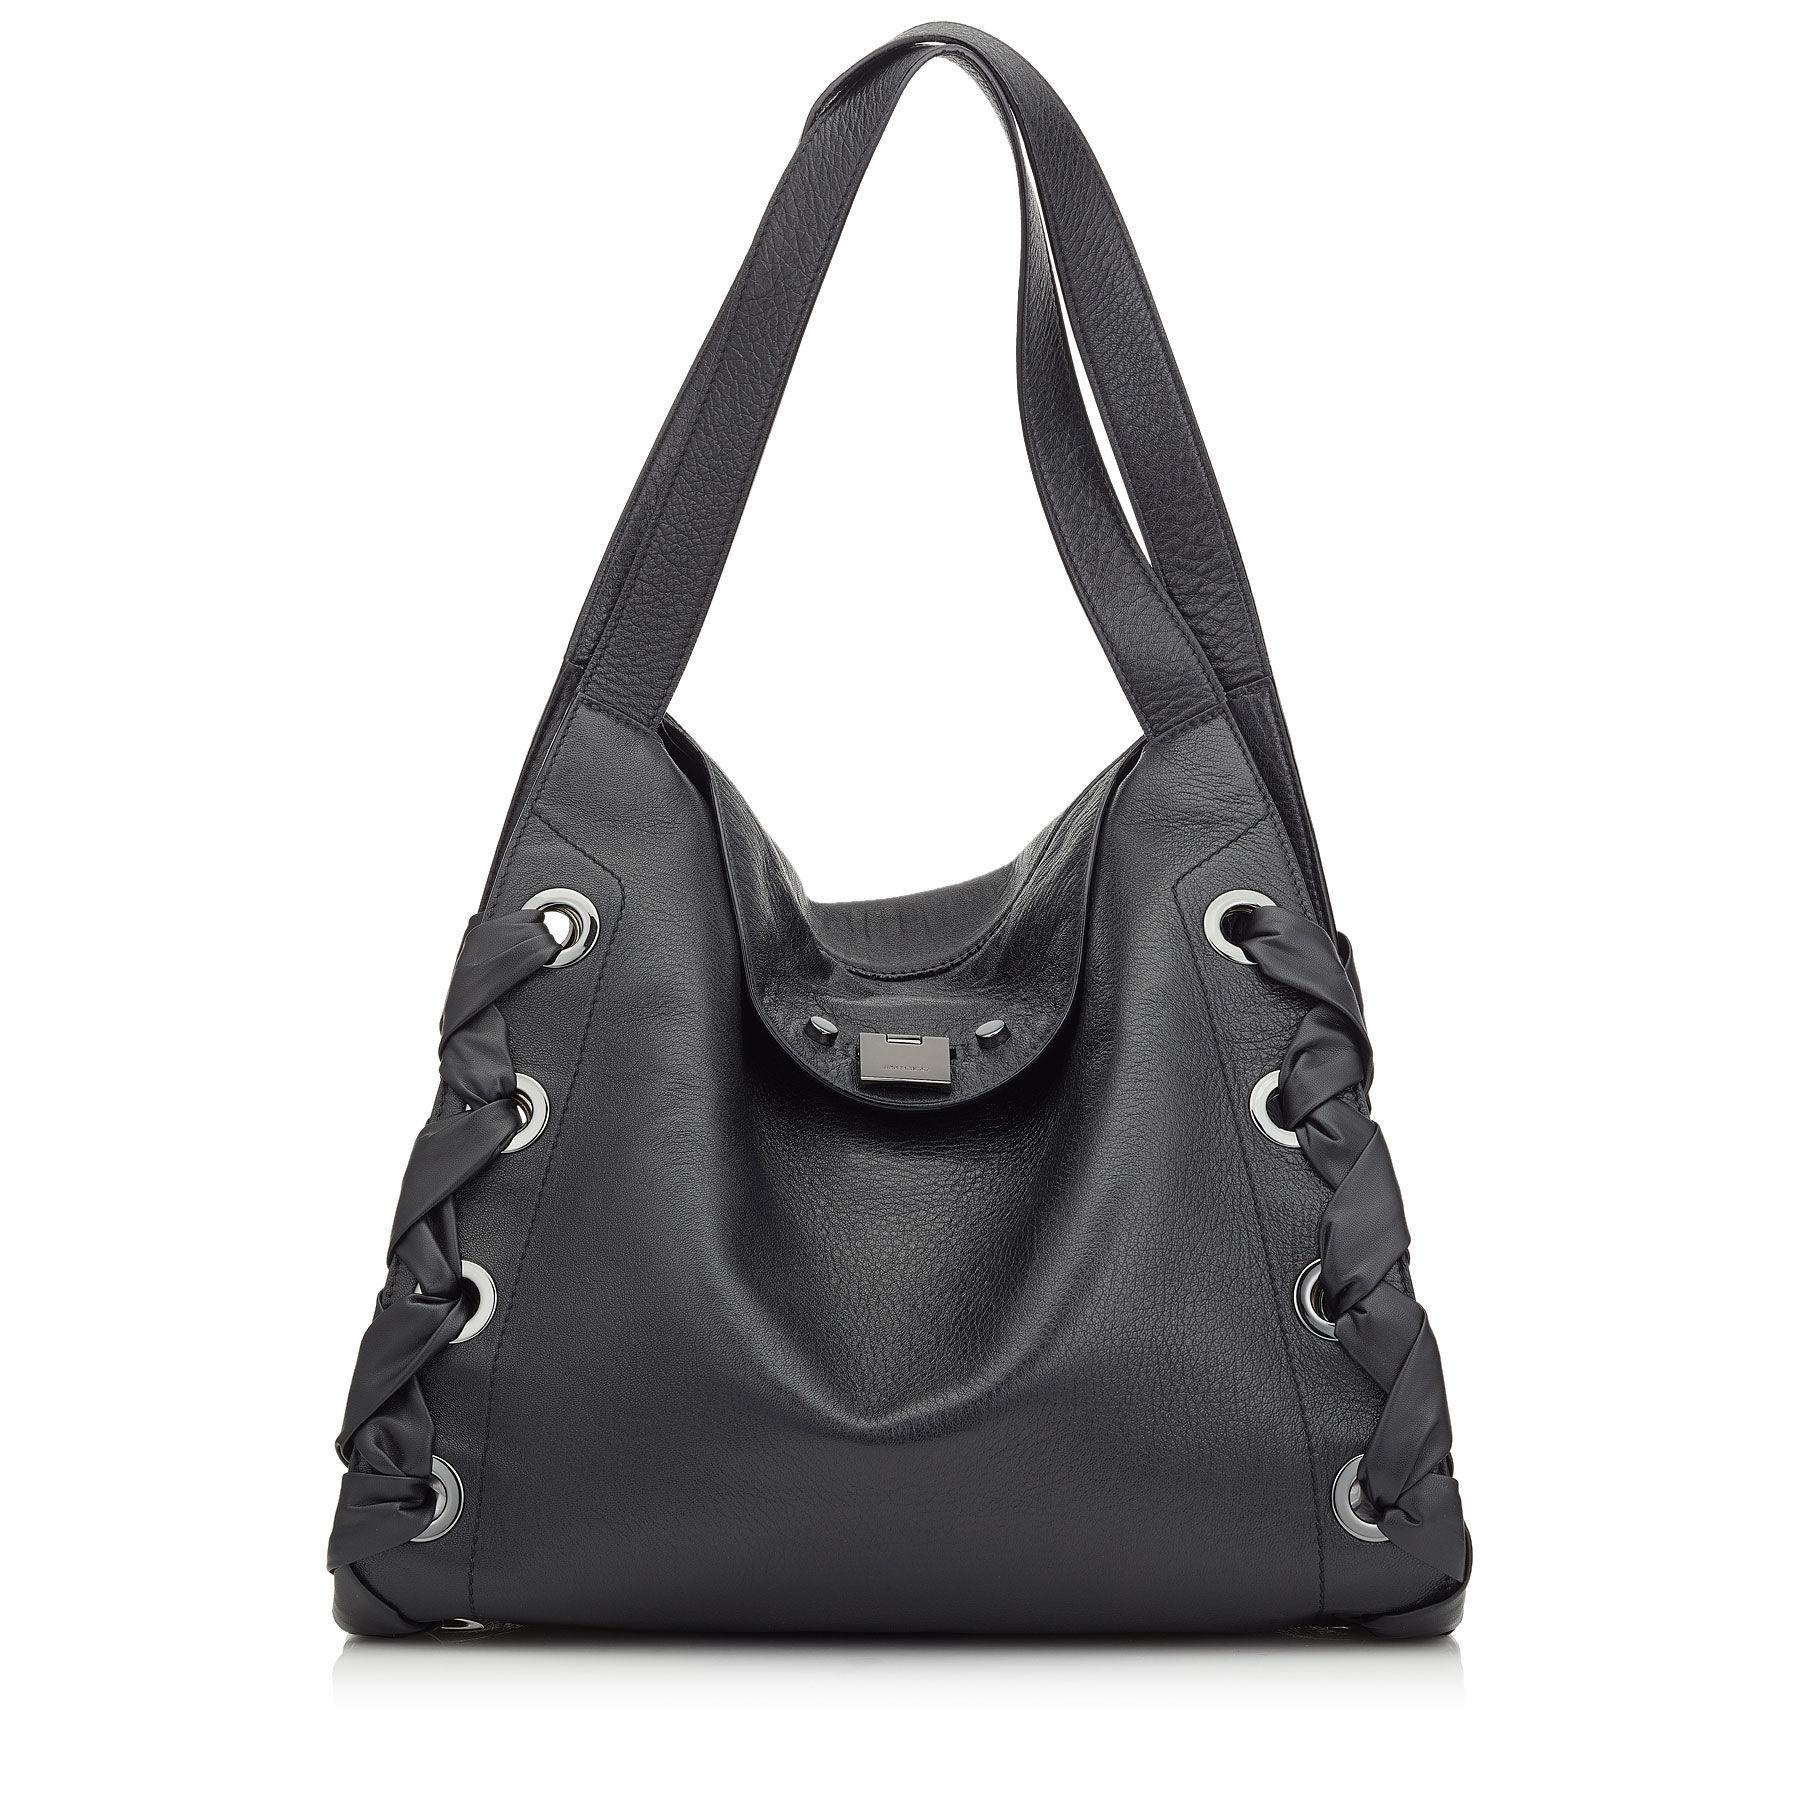 Rion tote bag - Grey Jimmy Choo London yLBbuva